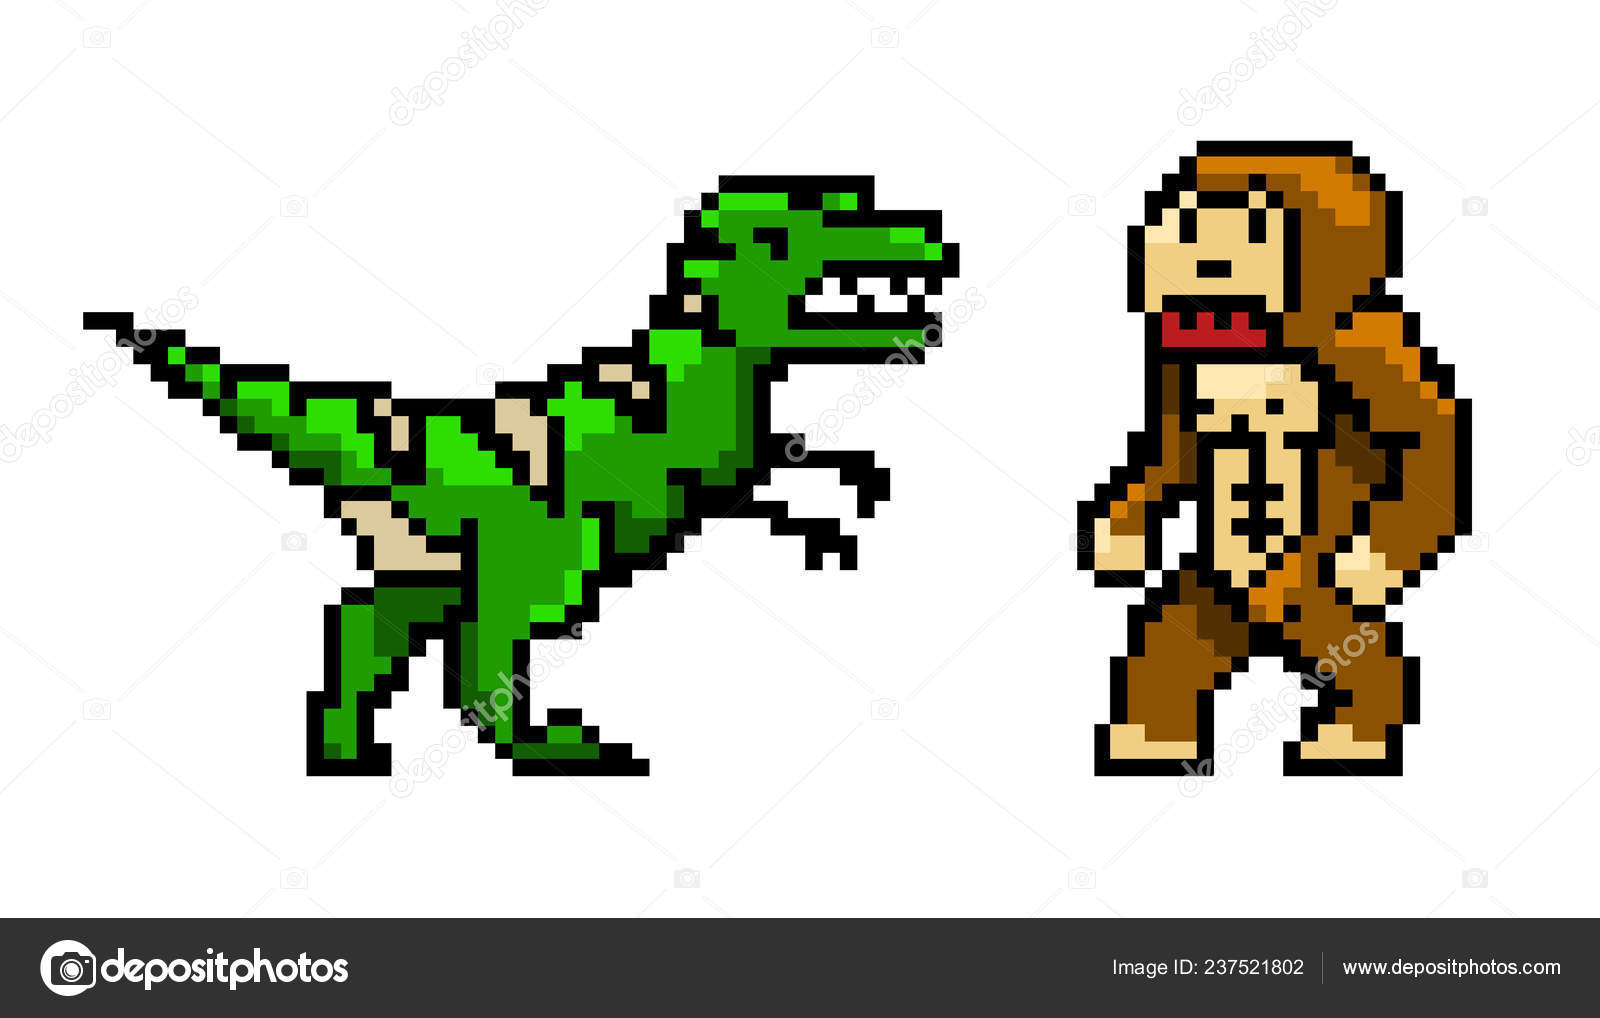 Pixel Art Dinosaur Pixel Art 8 Bit Objects Characters